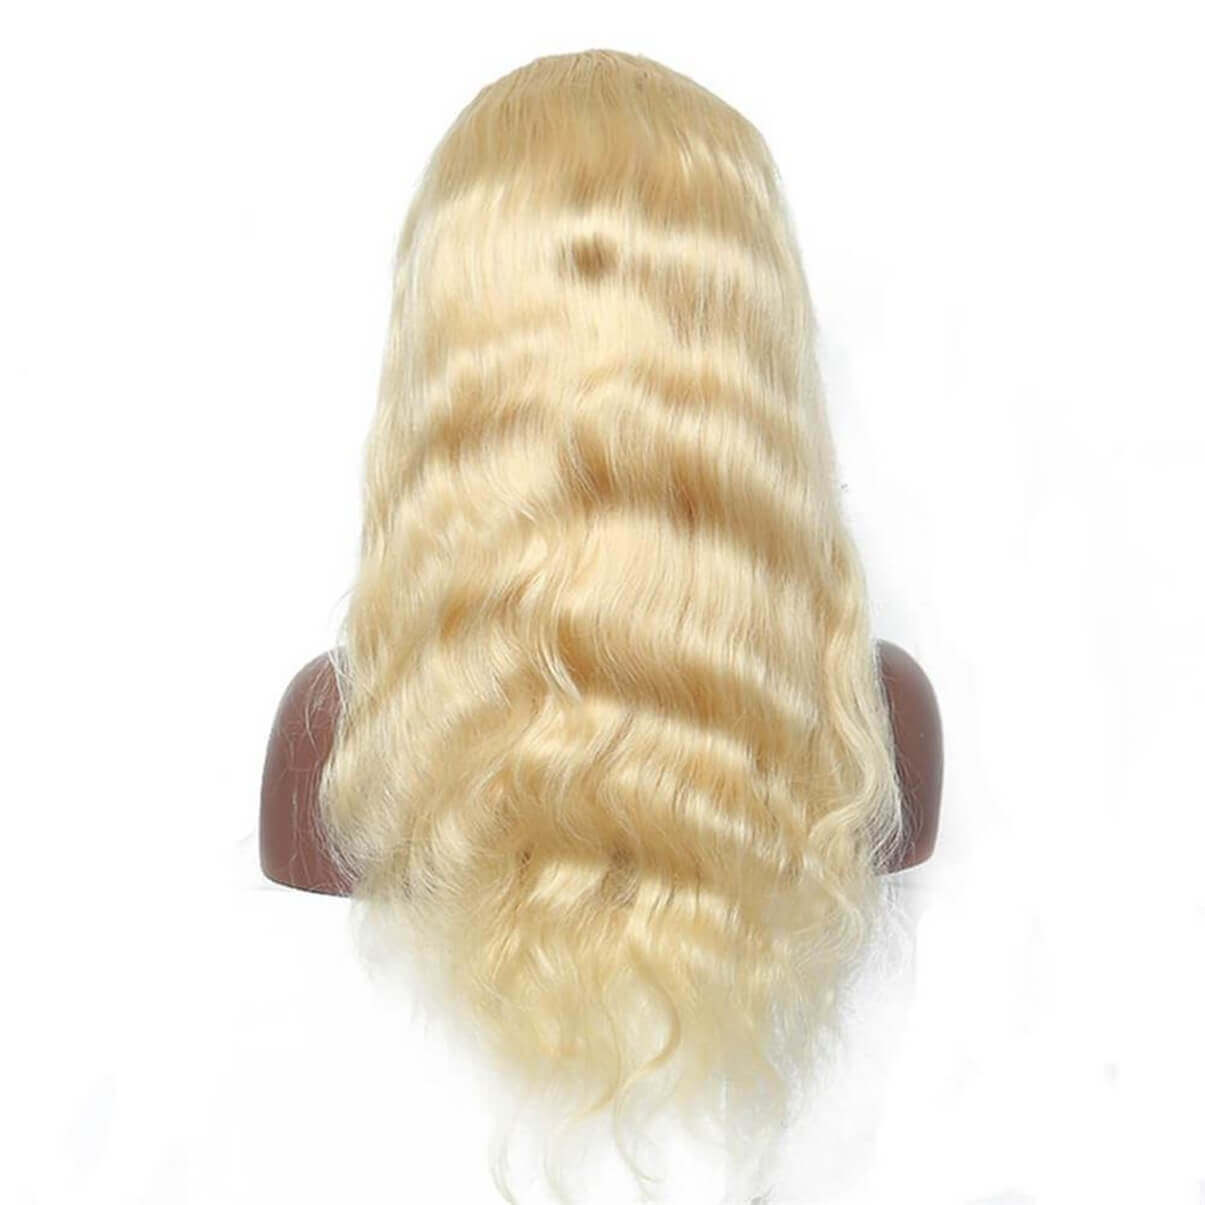 Lakihair 613 Blonde Body Wave Full Lace Wigs Brazilian Virgin Human Hair Wigs